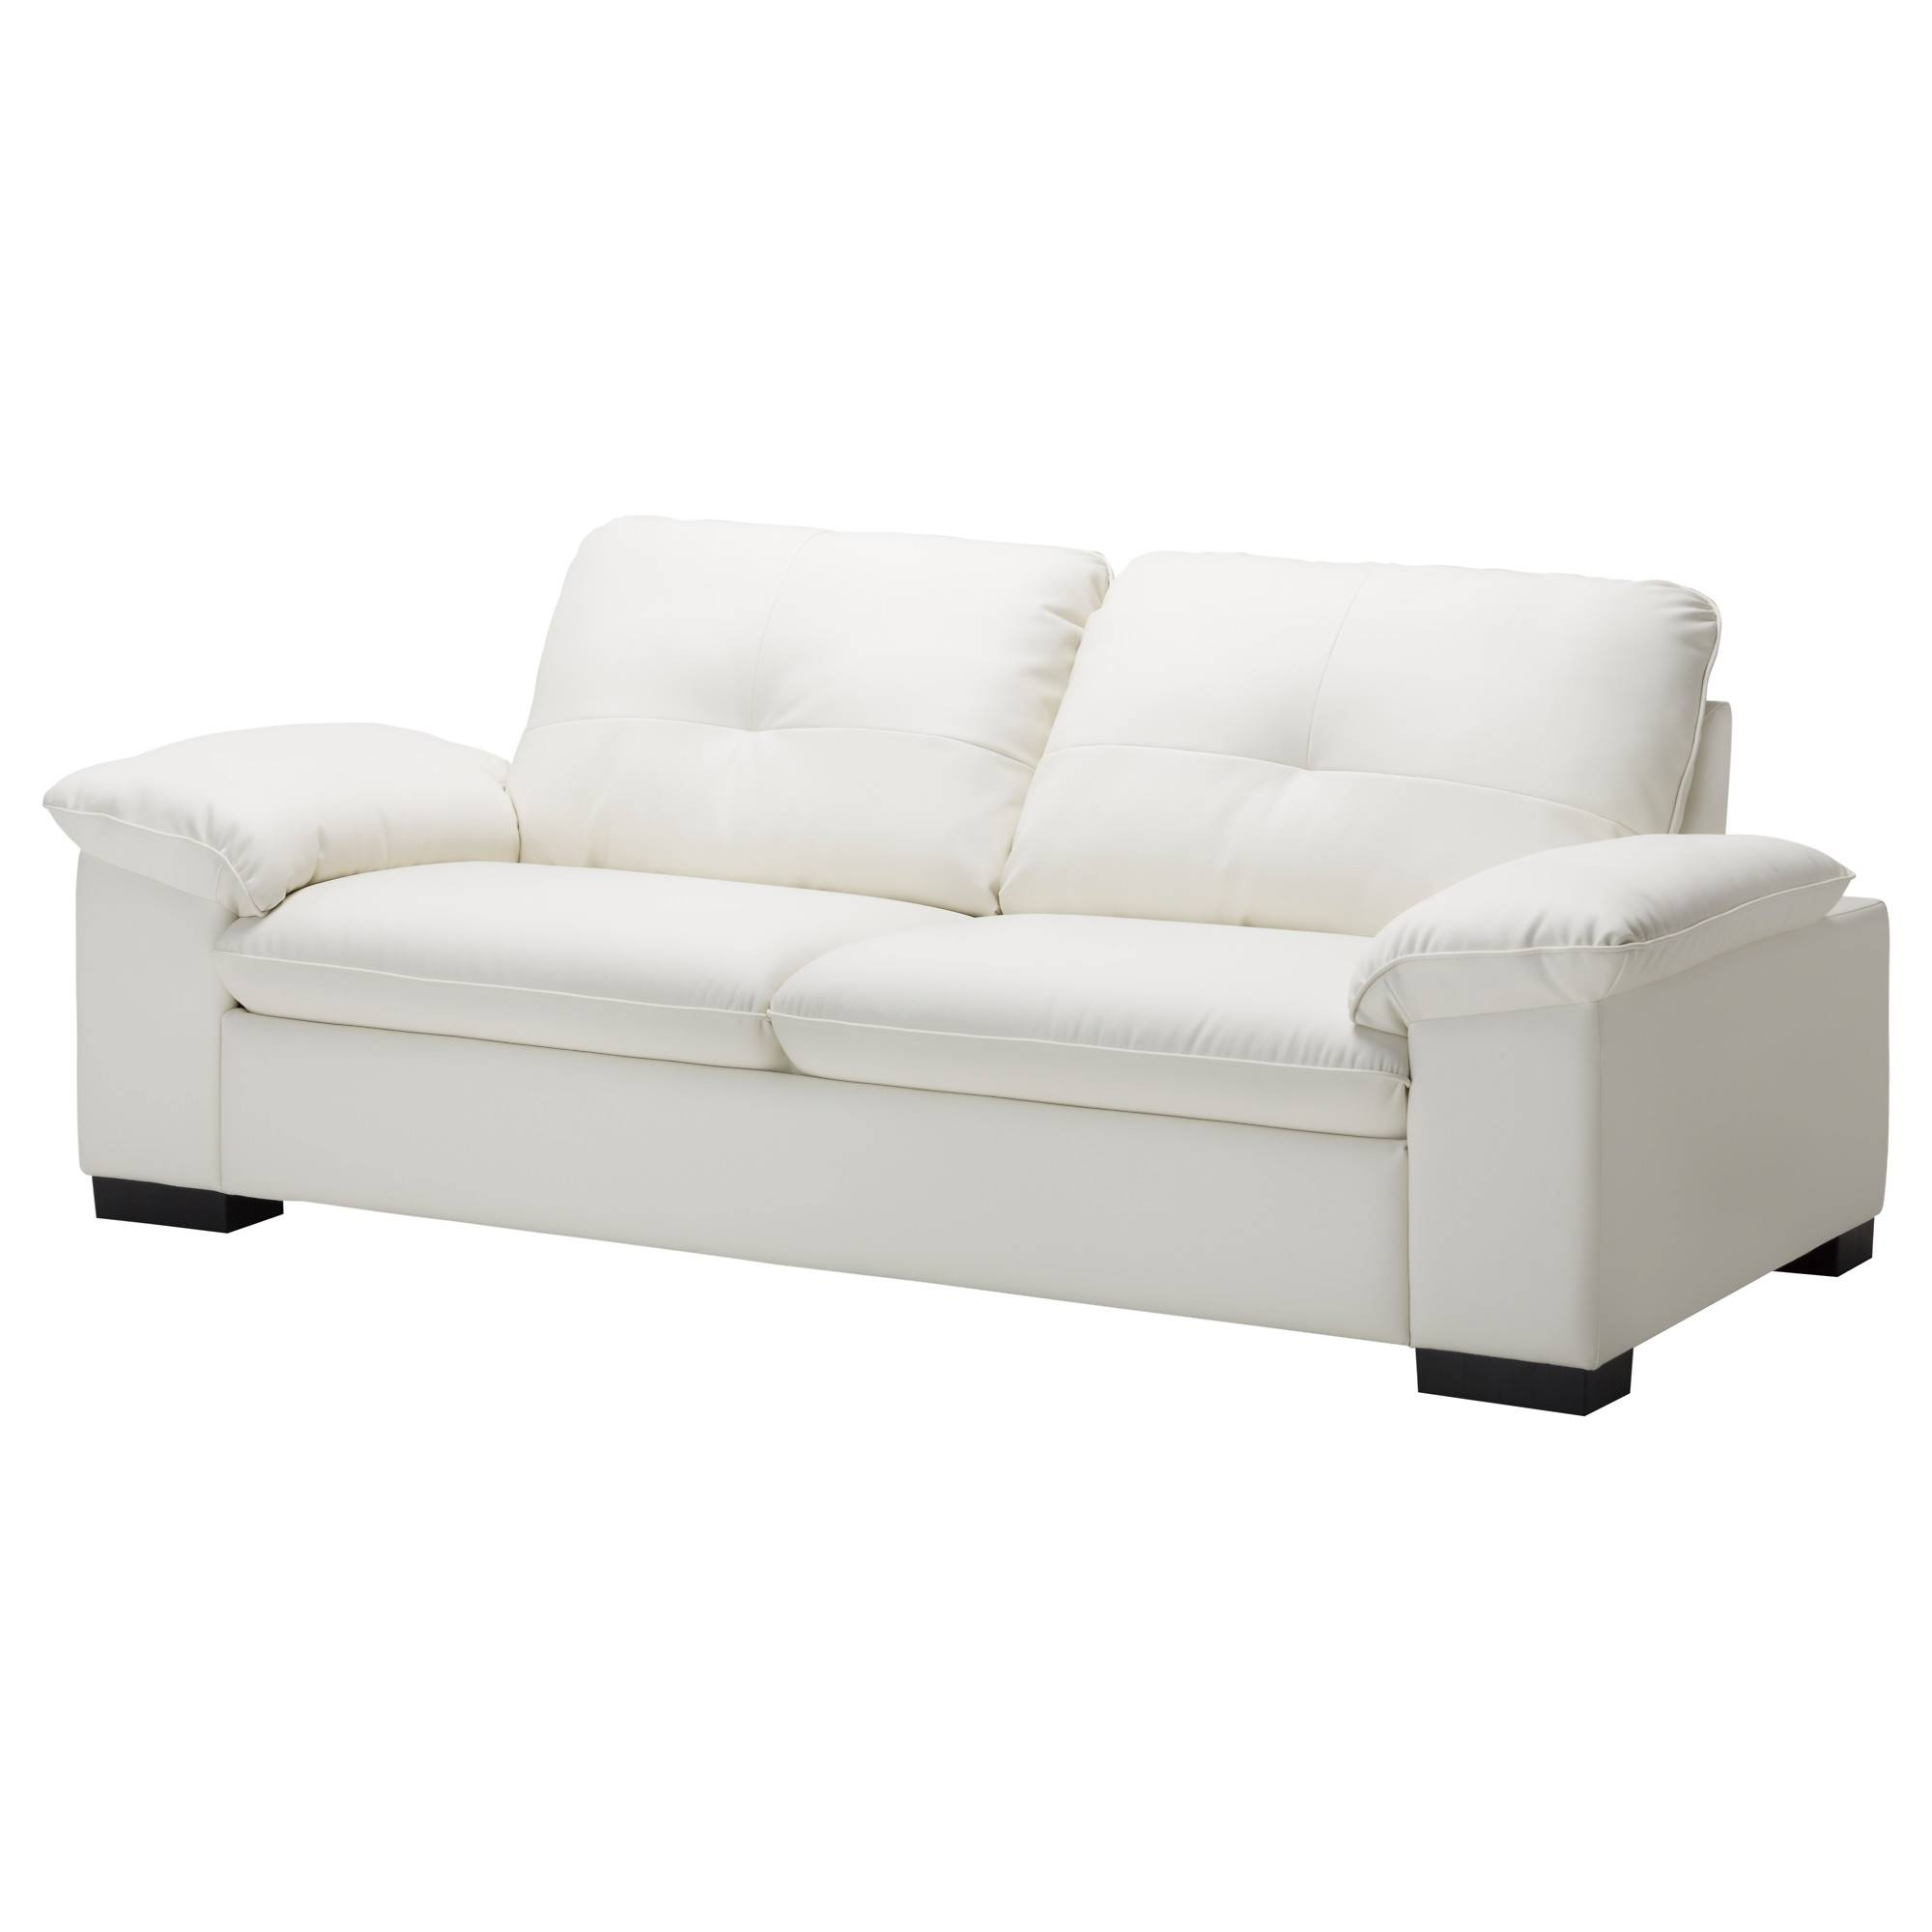 Sofas Center : White Leather Sofa Royalty Free Stock Photo Image with Off White Leather Sofa And Loveseat (Image 24 of 30)